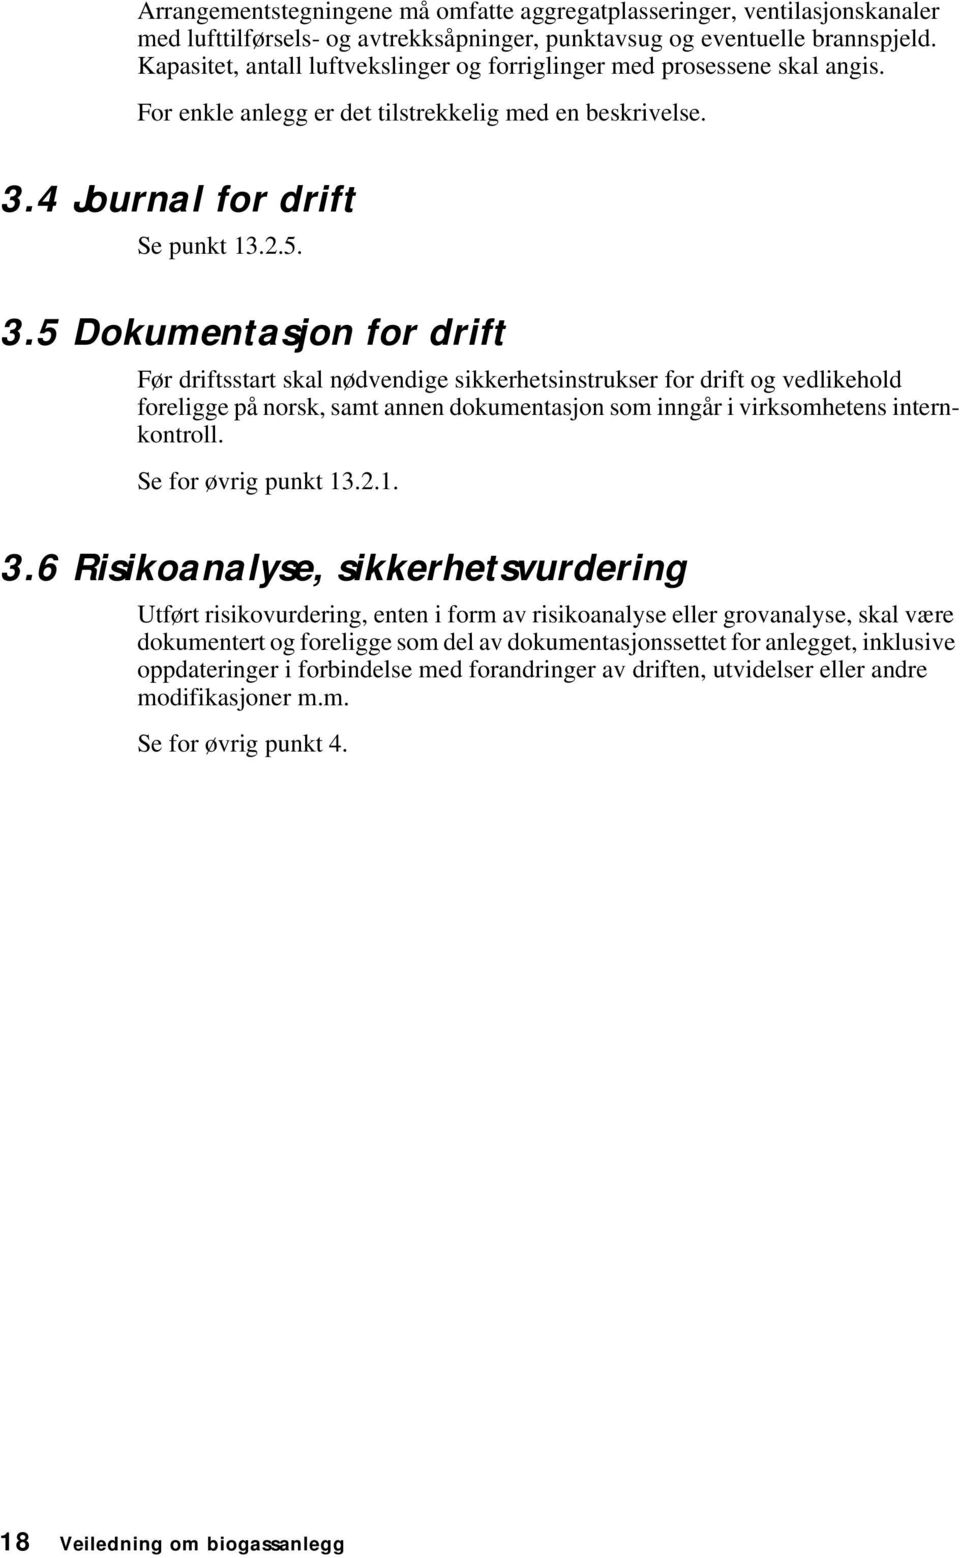 4 Journal for drift Se punkt 13.2.5. 3.